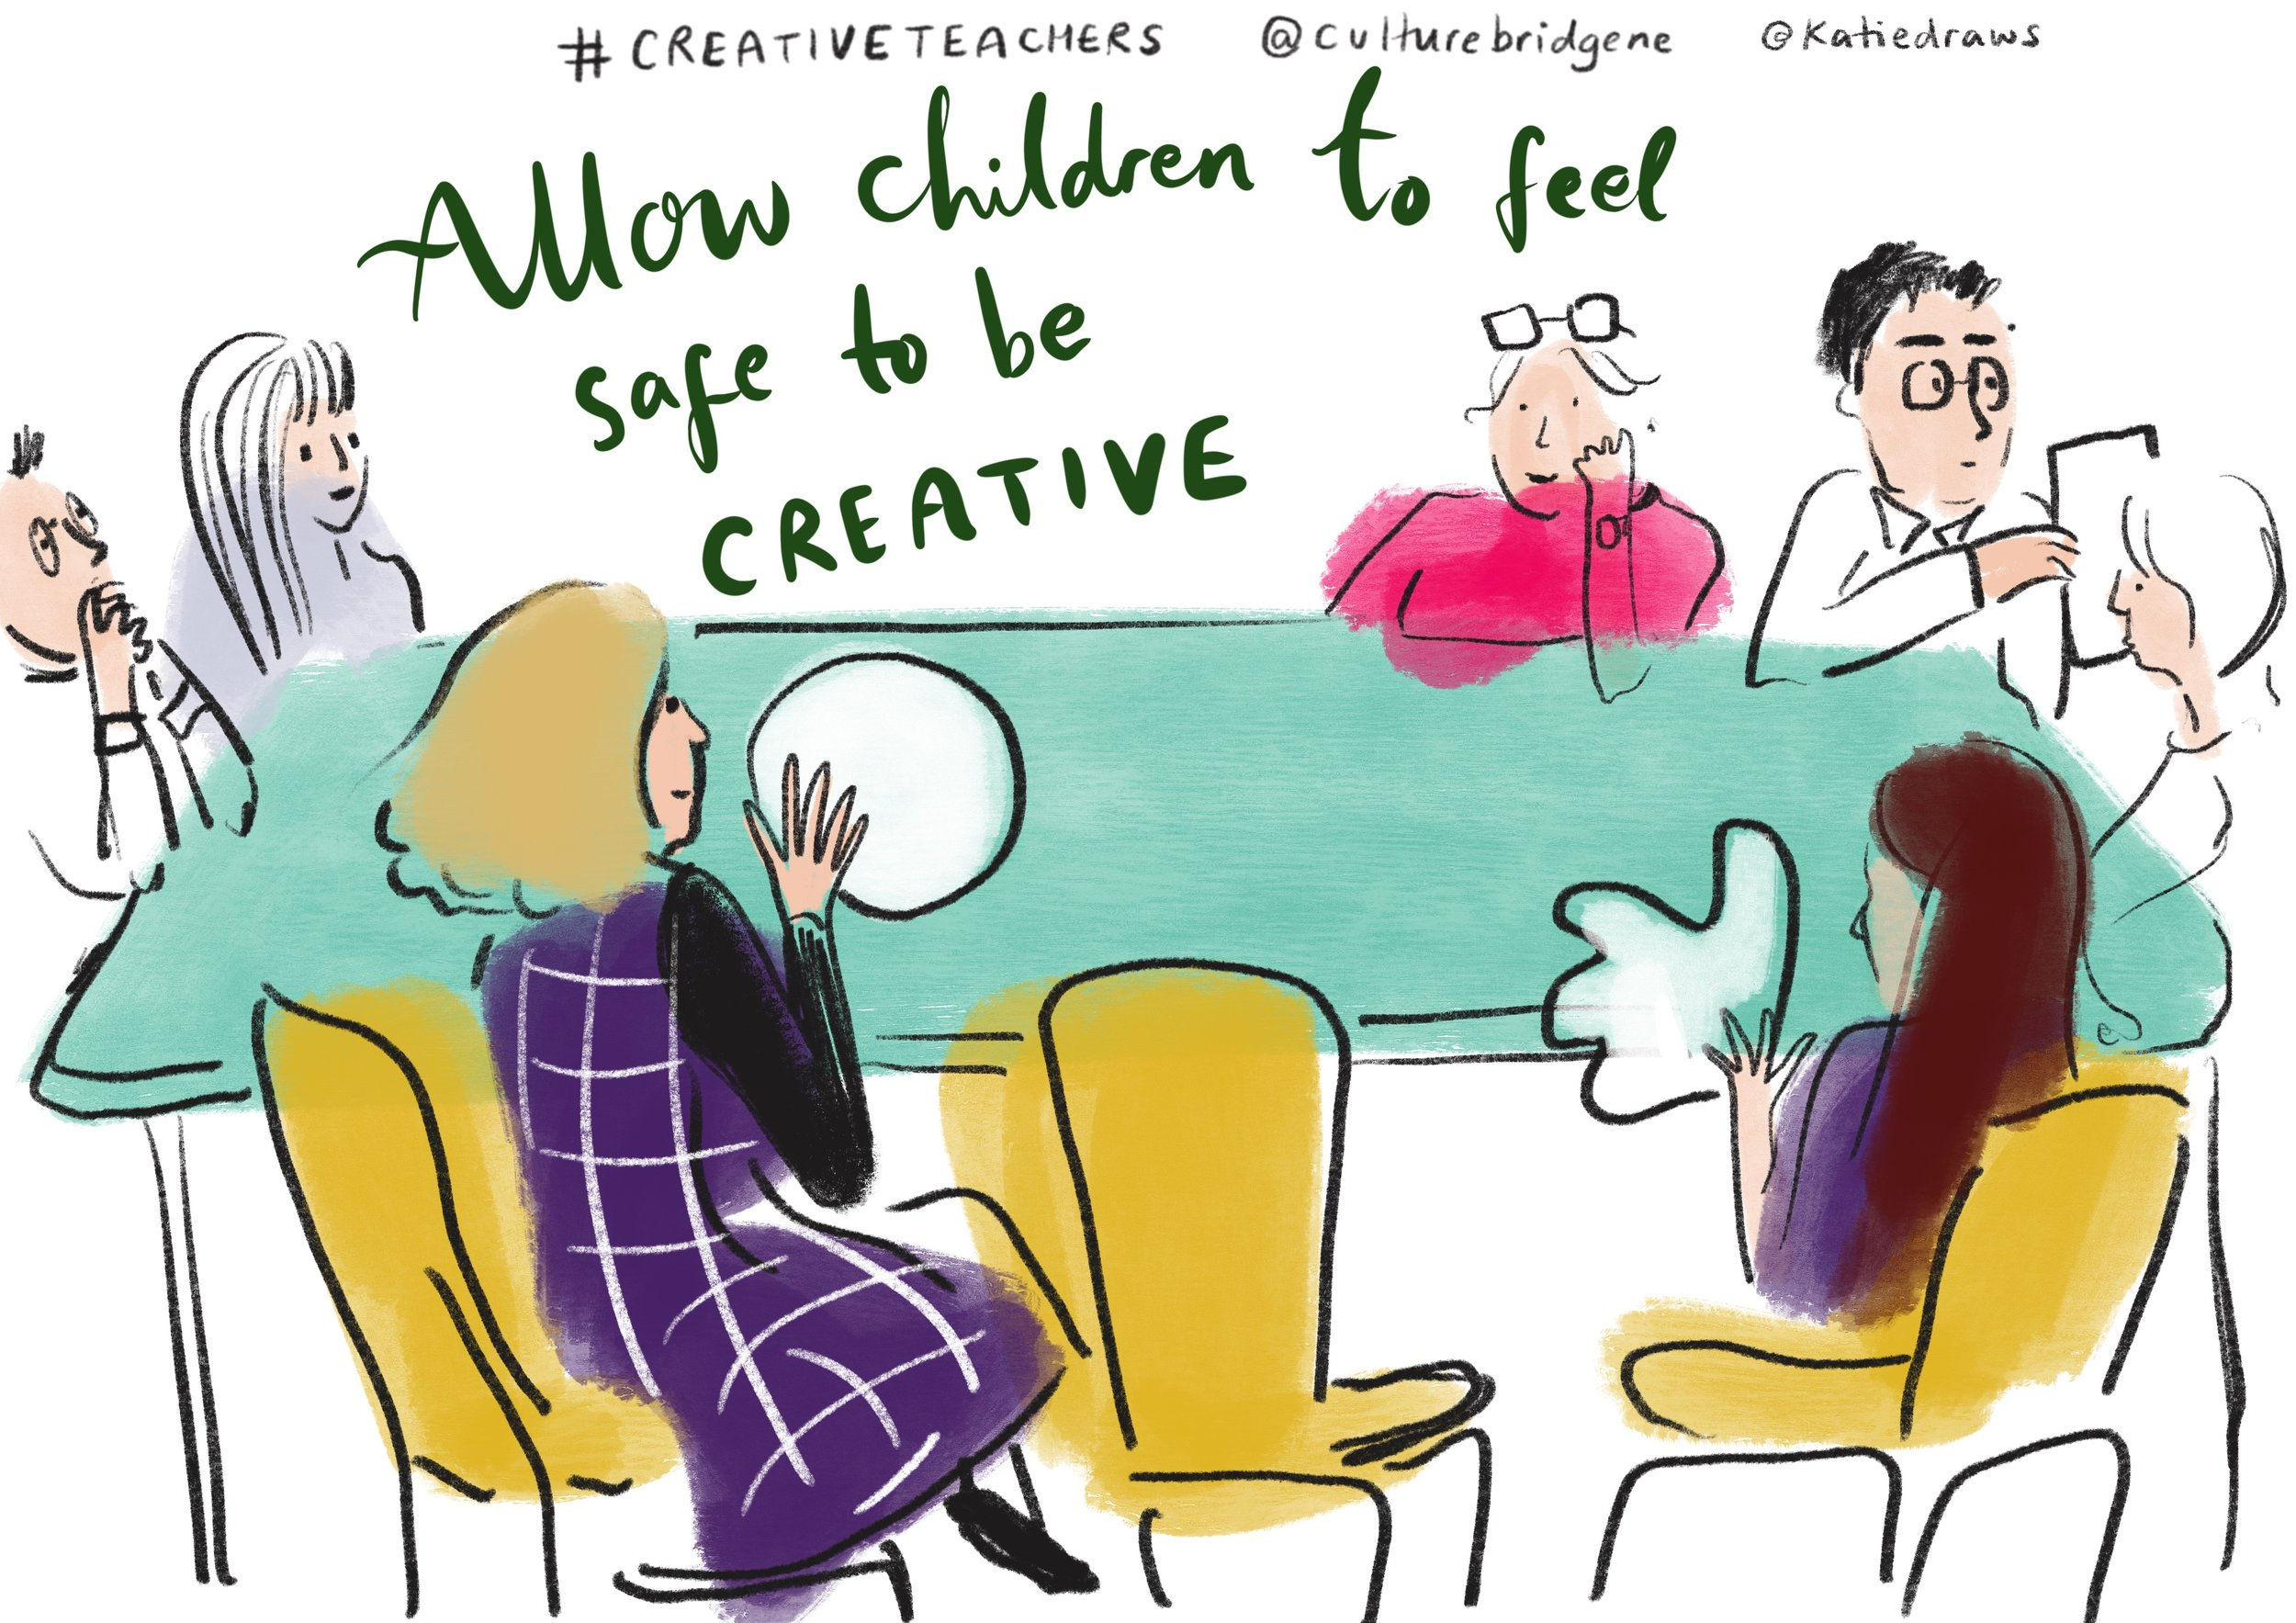 Big Creative Teachers Event - art classroom illustration.jpg